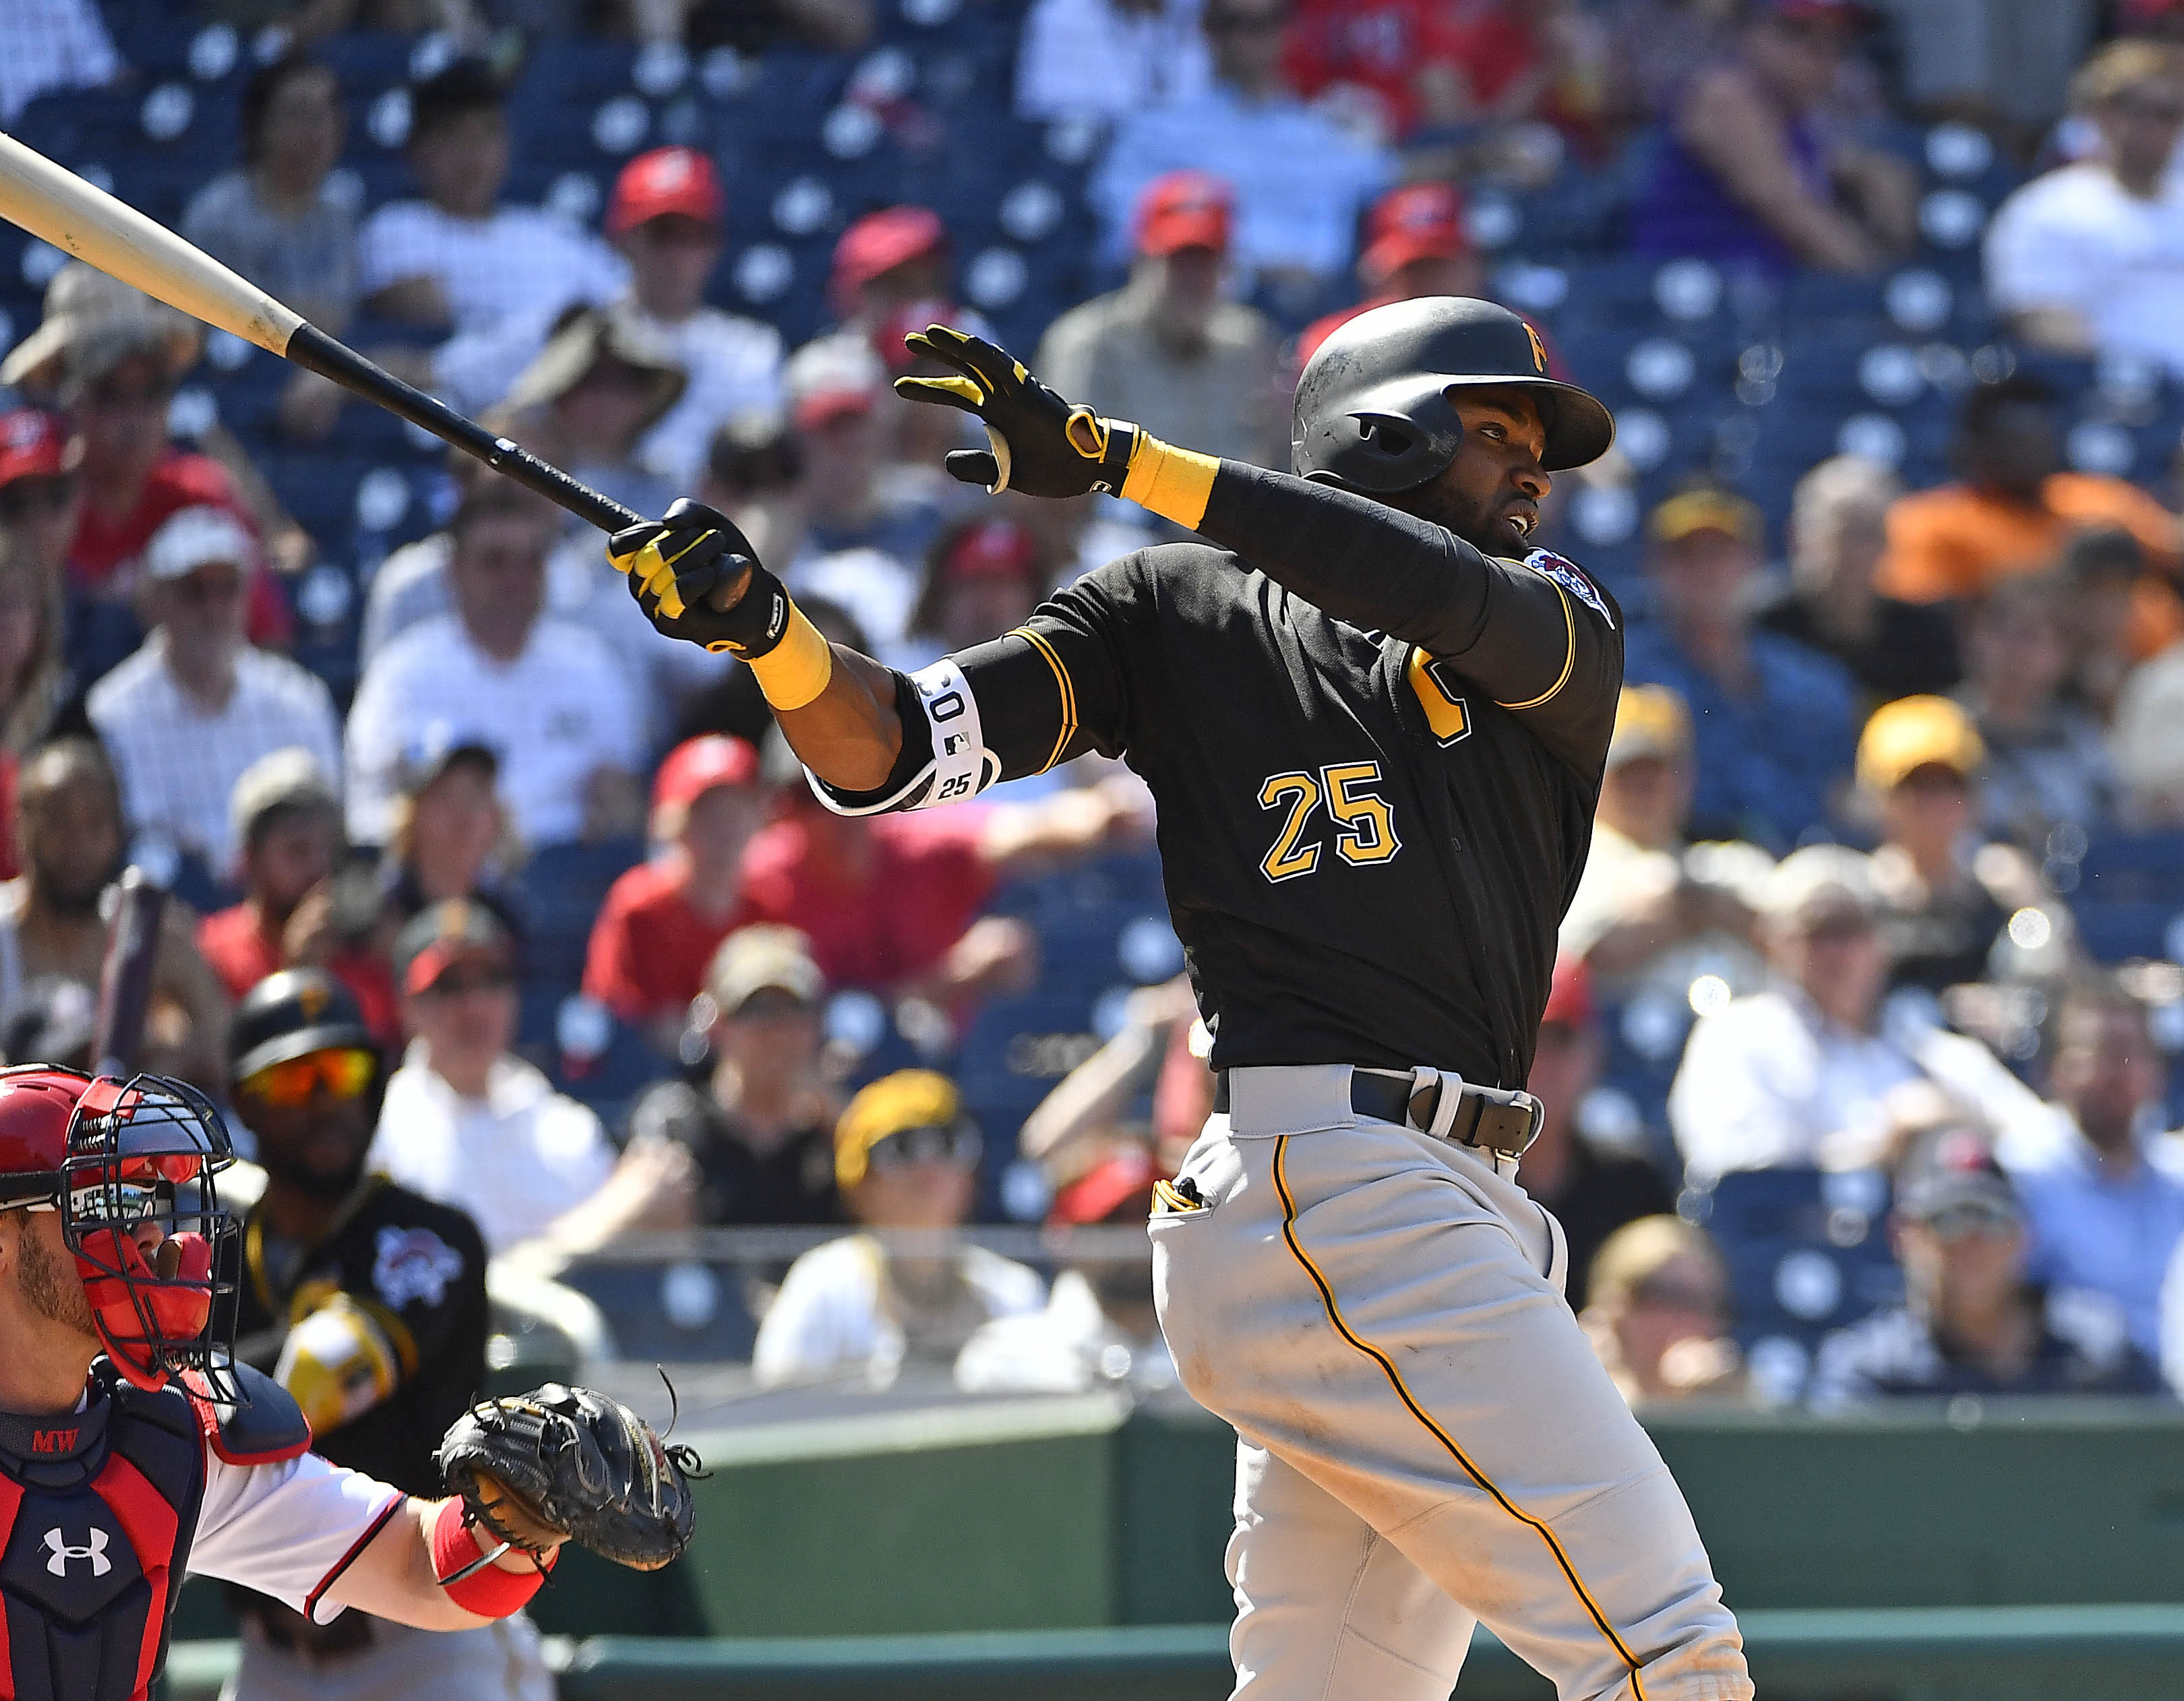 Gregory Polanco has an easy path towards more production